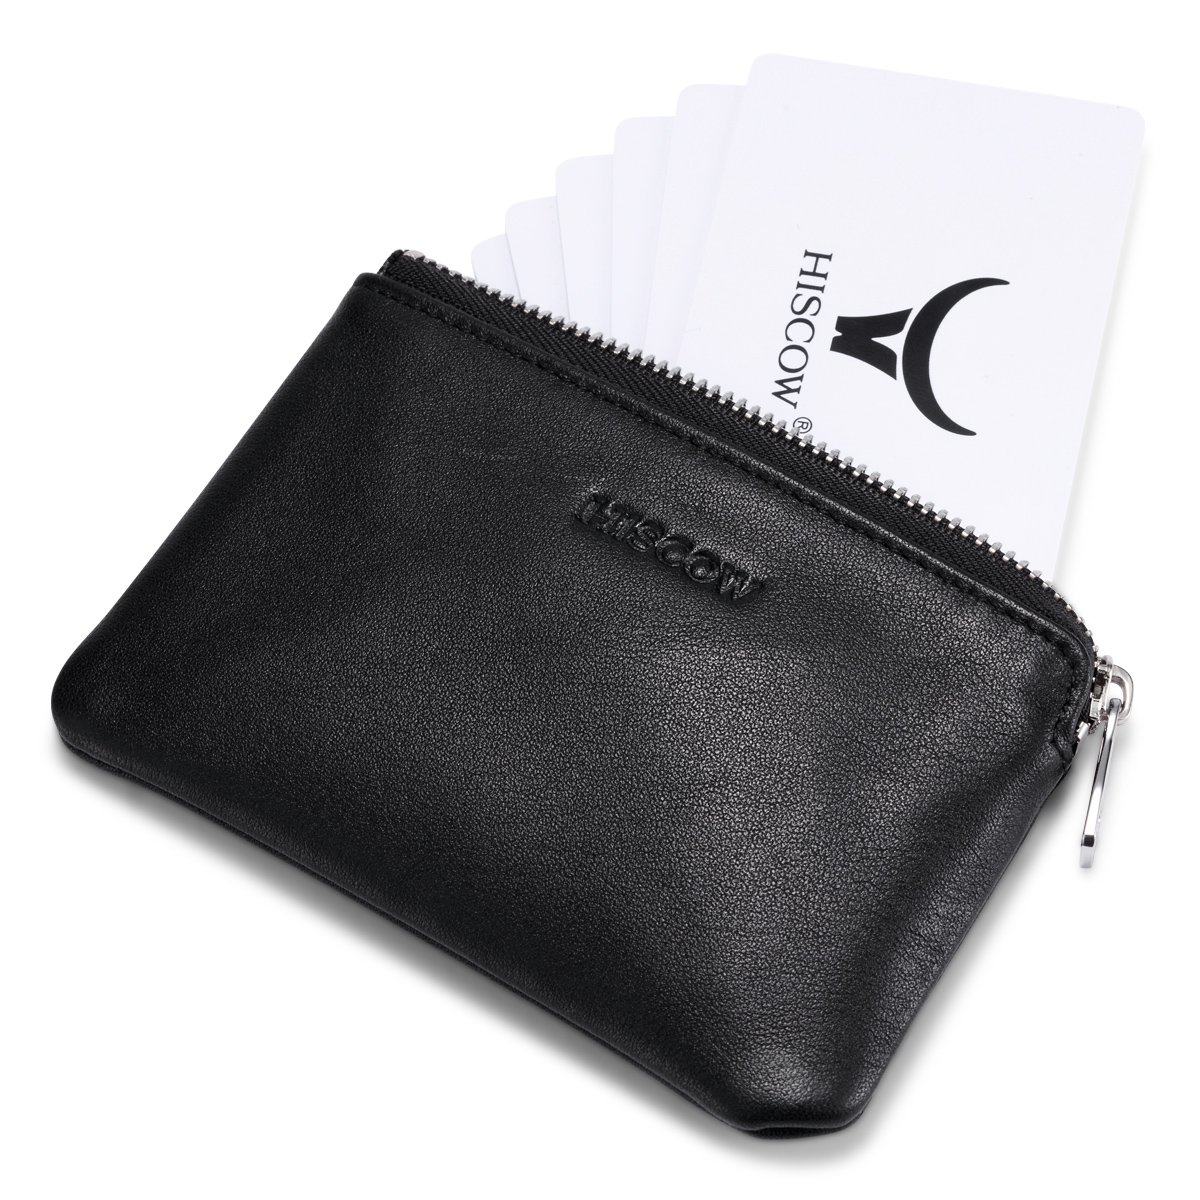 HISCOW Zipper Soft Card Pouch Black with Single Compartment - Italian Calfskin 11406_black